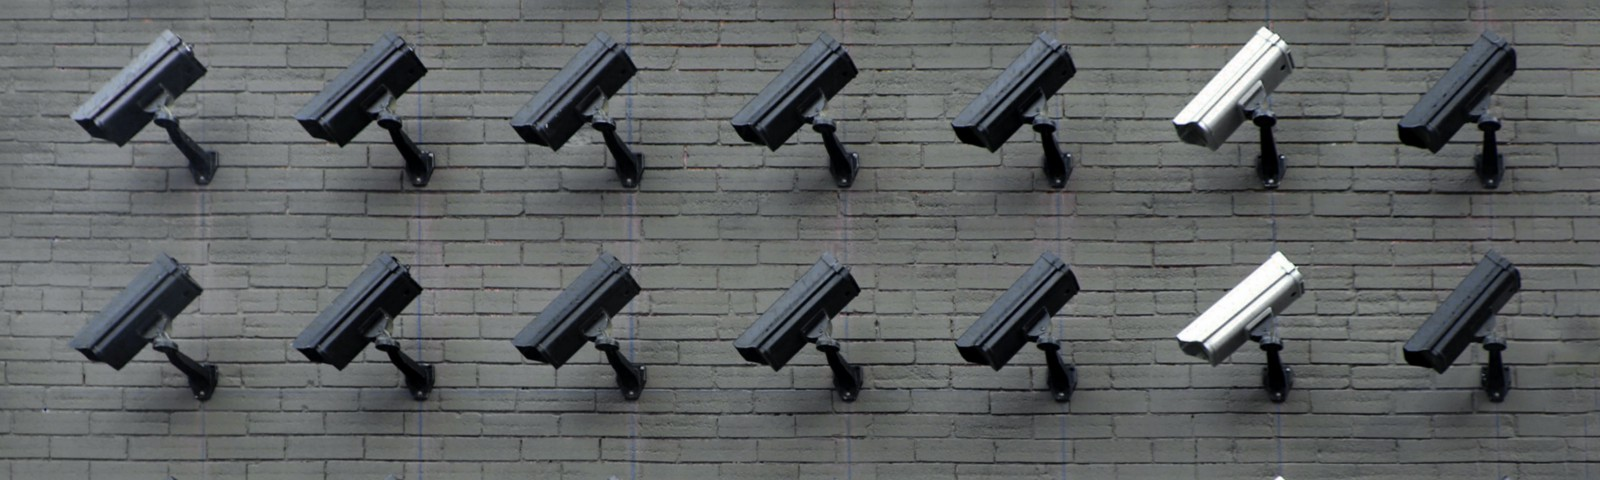 multiple CCTV cameras on a wall